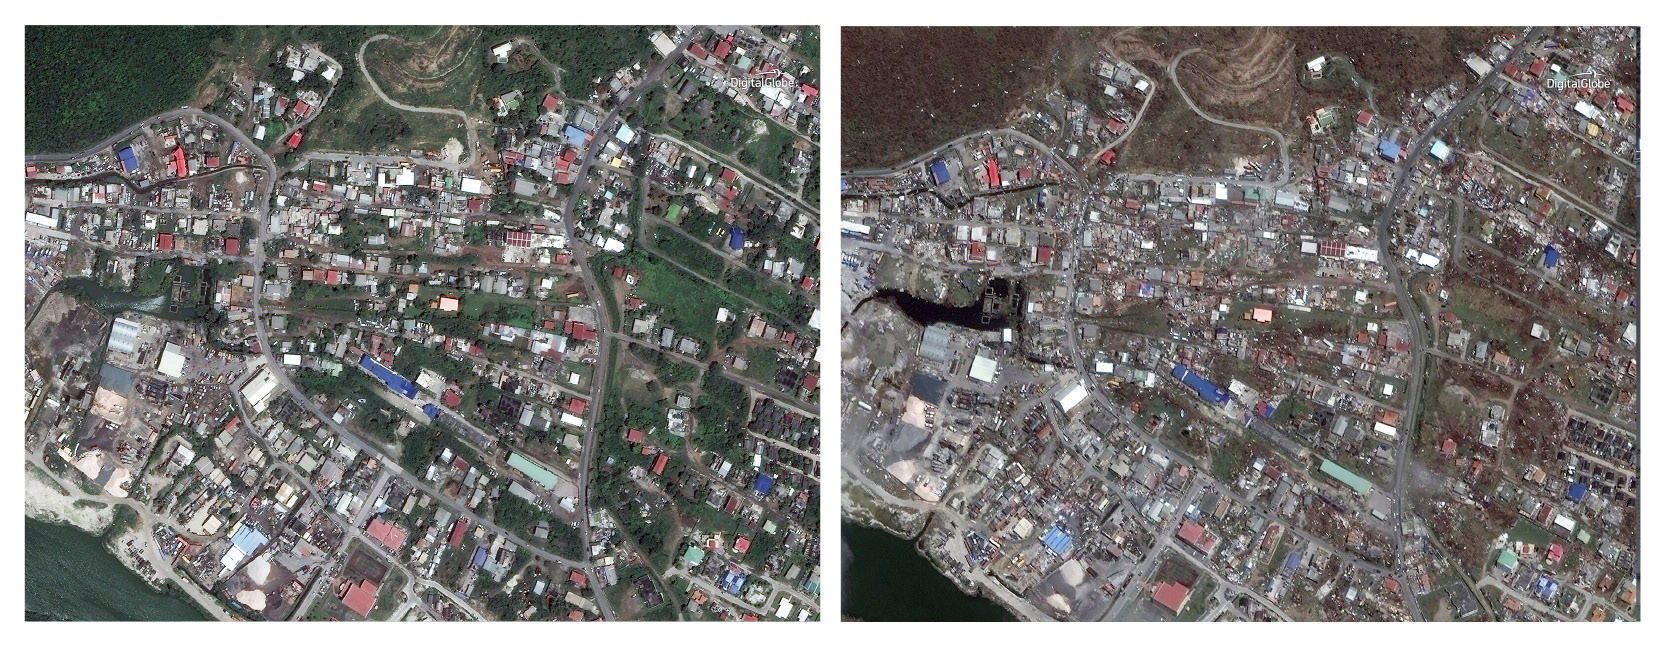 This combination of satellite images provided by DigitalGlobe shows Philipsburg, Sint Maarten on Aug. 25, 2016, and Monday, Sept. 11, 2017, after Hurricane Irma. Irma cut a path of devastation across the northern Caribbean, leaving thousands homeless after destroying buildings and uprooting trees. The island known as St. Martin in English is divided between French Saint-Martin and Dutch Sint Maarten. (DigitalGlobe via AP)